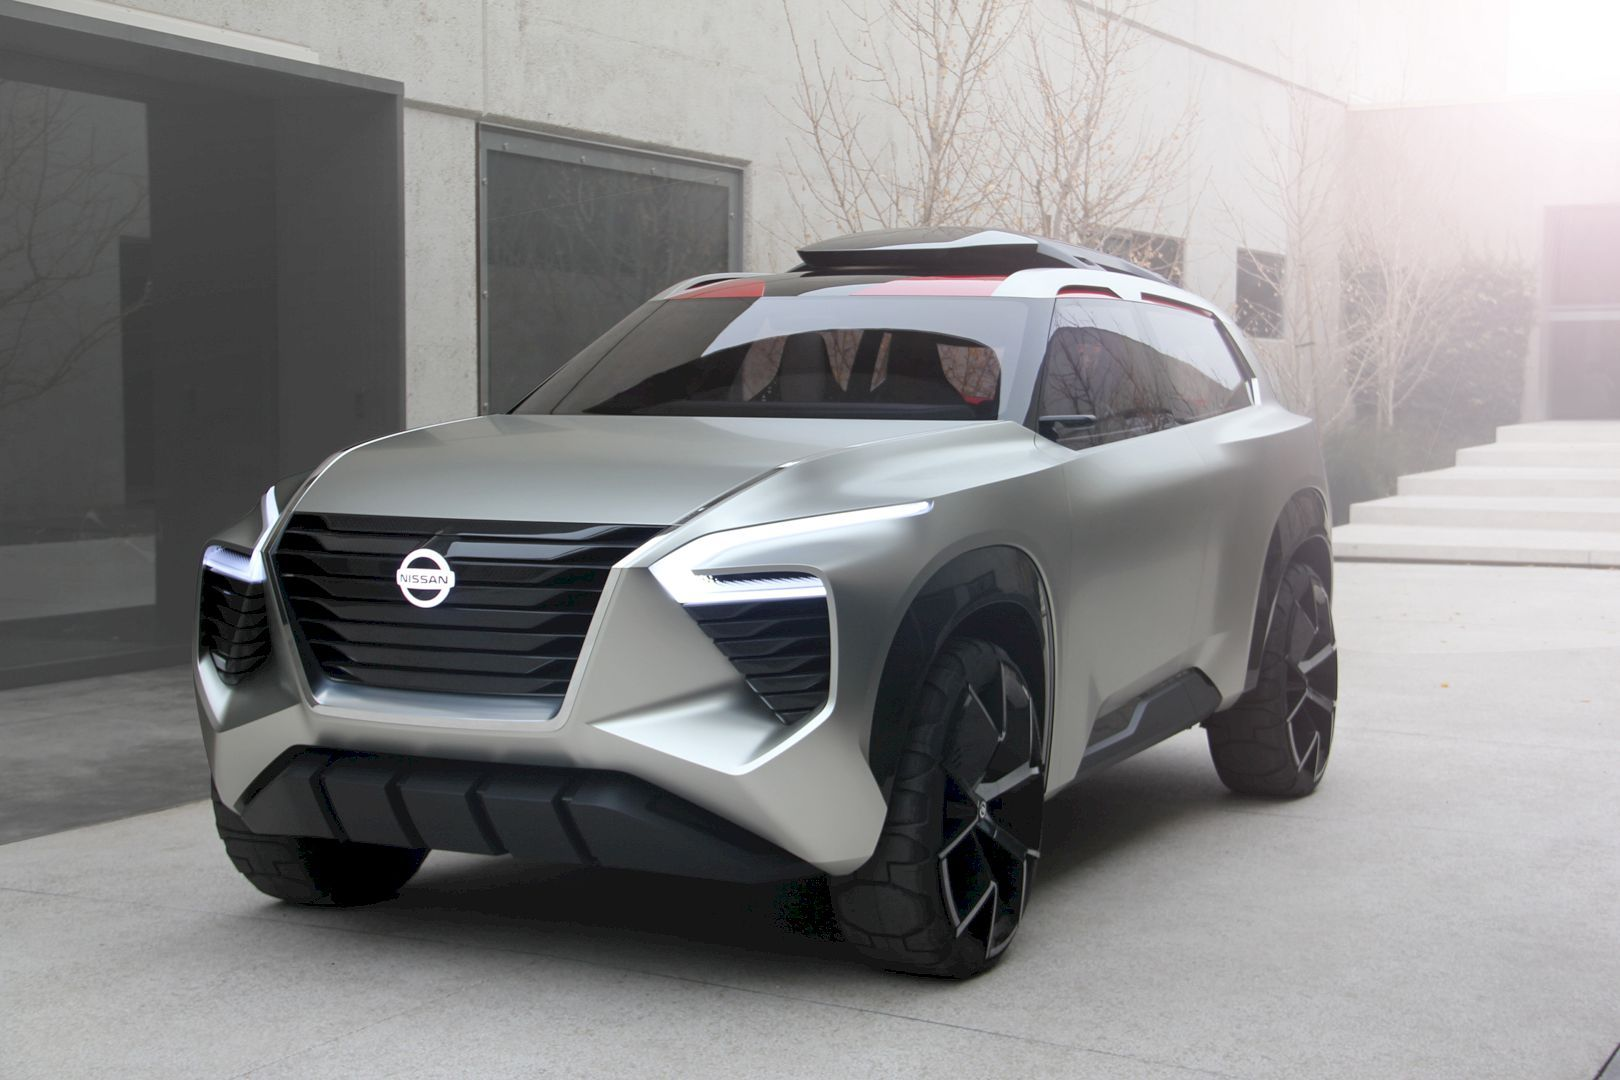 Nissan Xmotion Rule Out Any Doubt In Designing The Next Step Of Futuristic Suv Nissan New Luxury Cars Concept Cars